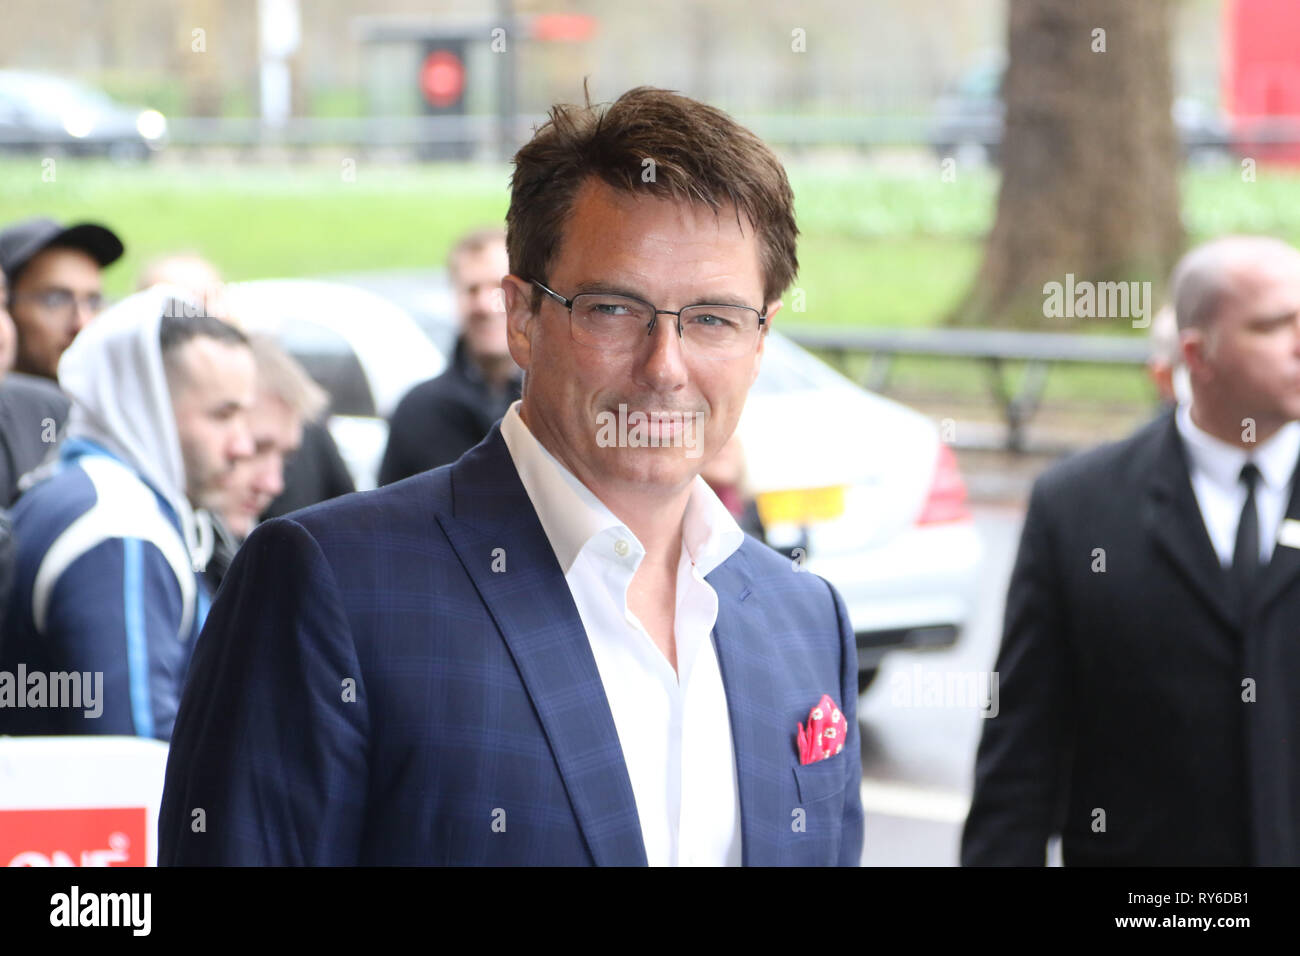 London, UK. 12th Mar, 2019. John Barrowman, The TRIC Awards 50th Anniversary 2019, The Grosvenor House Hotel, London, UK, 12 March 2019, Photo by Richard Goldschmidt Credit: Rich Gold/Alamy Live News - Stock Image